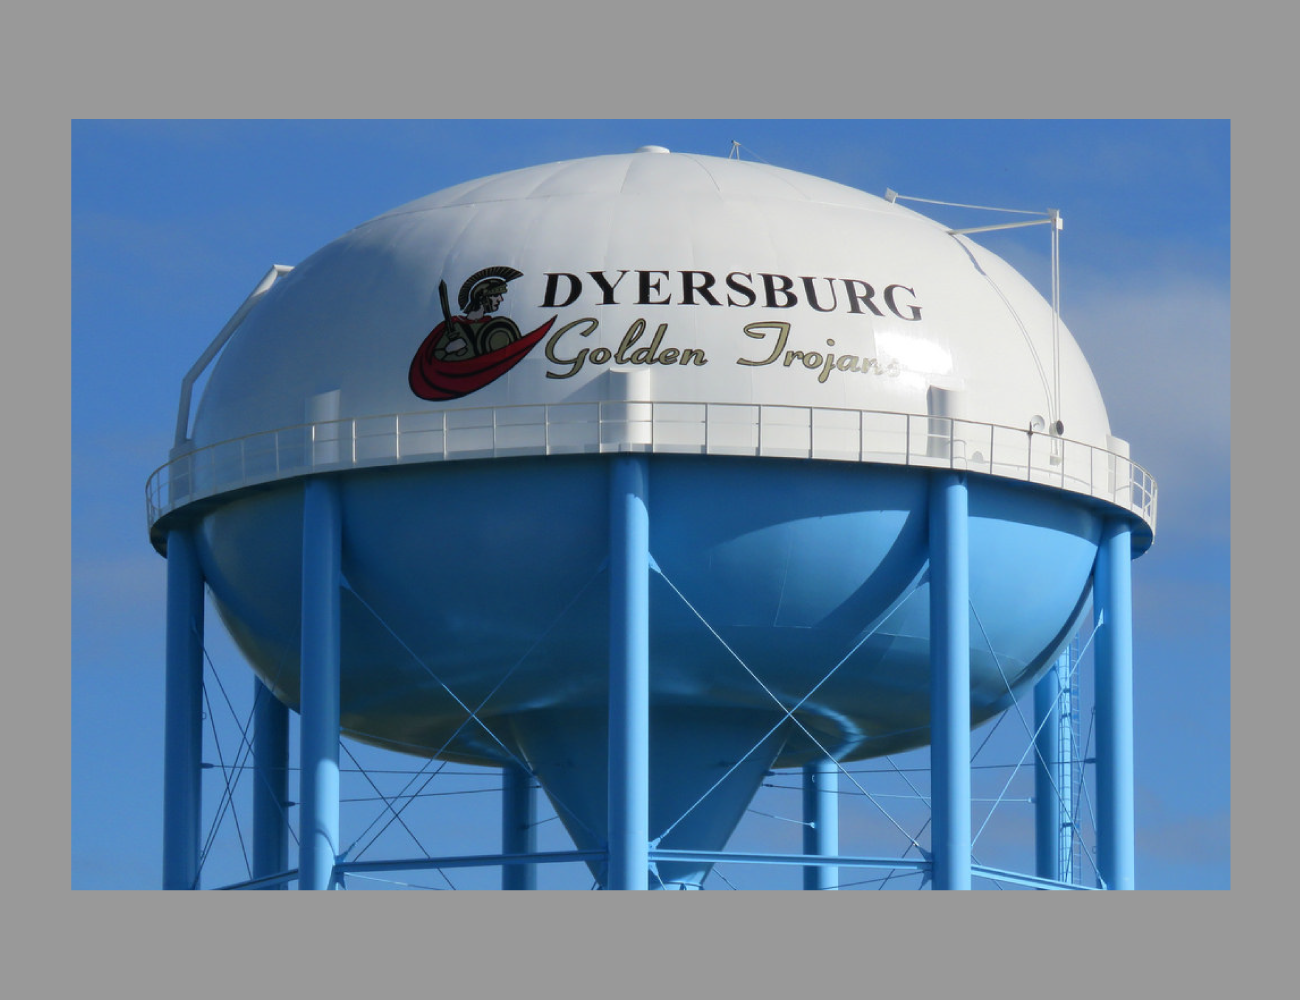 Dyersburg Water Tower